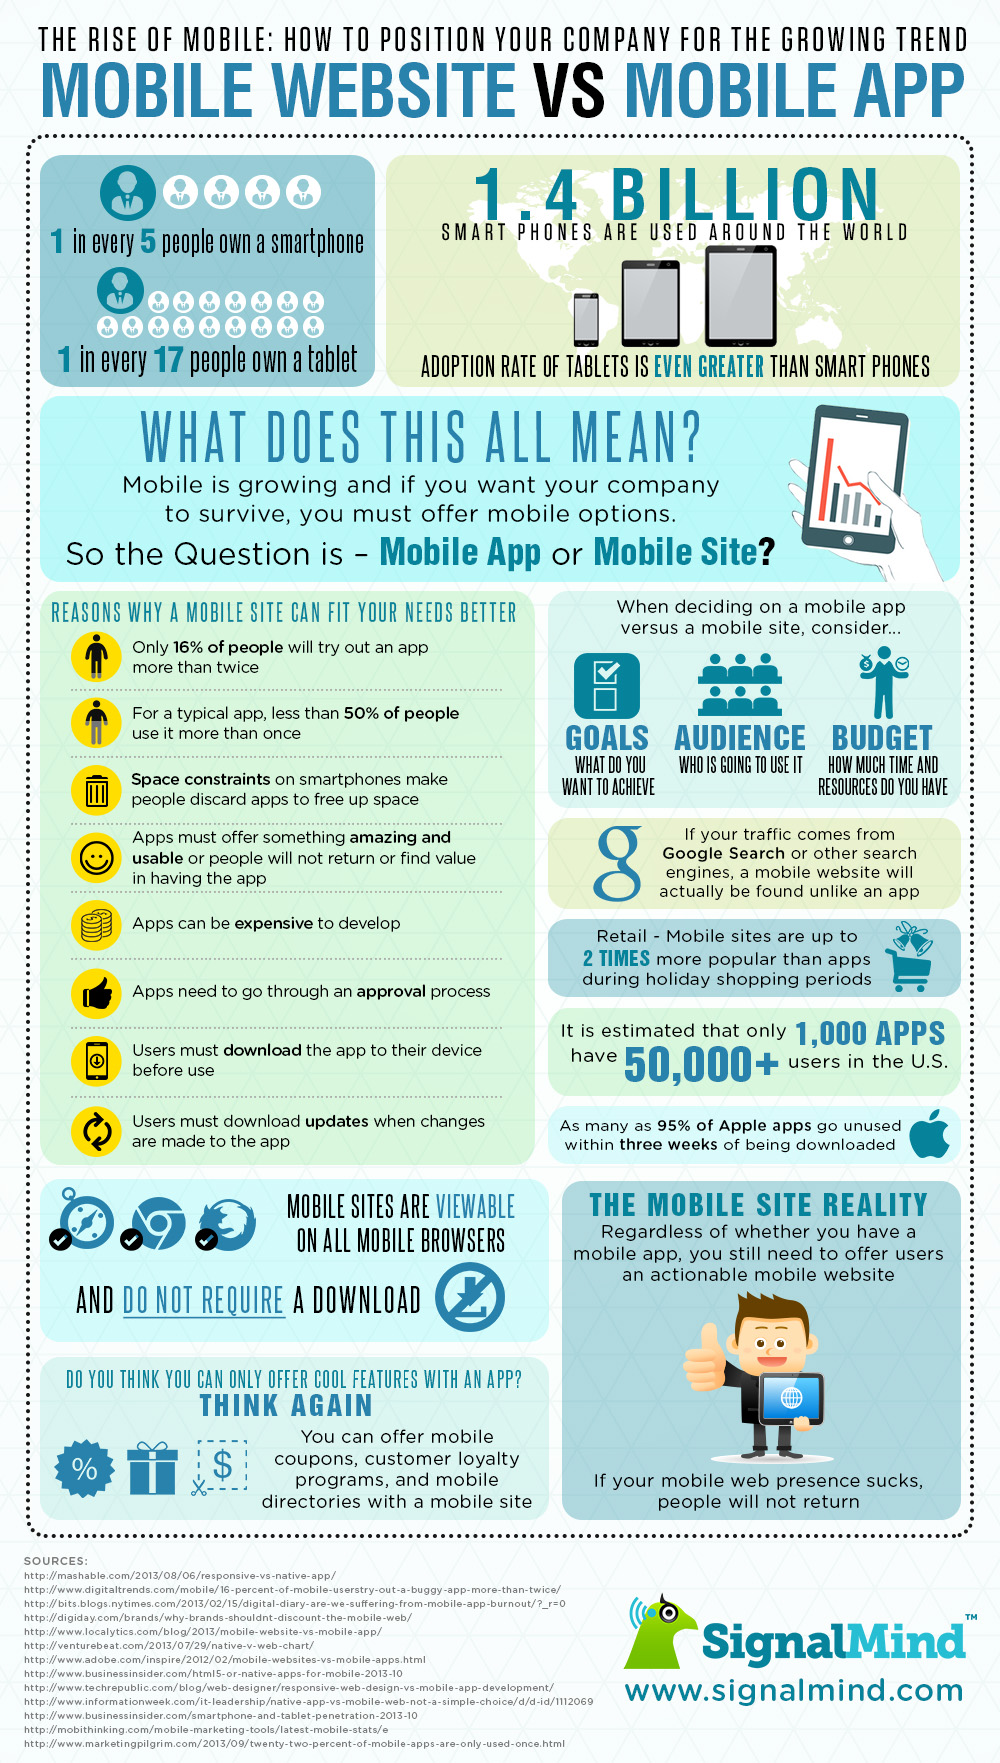 Is a mobile app better than a mobile website